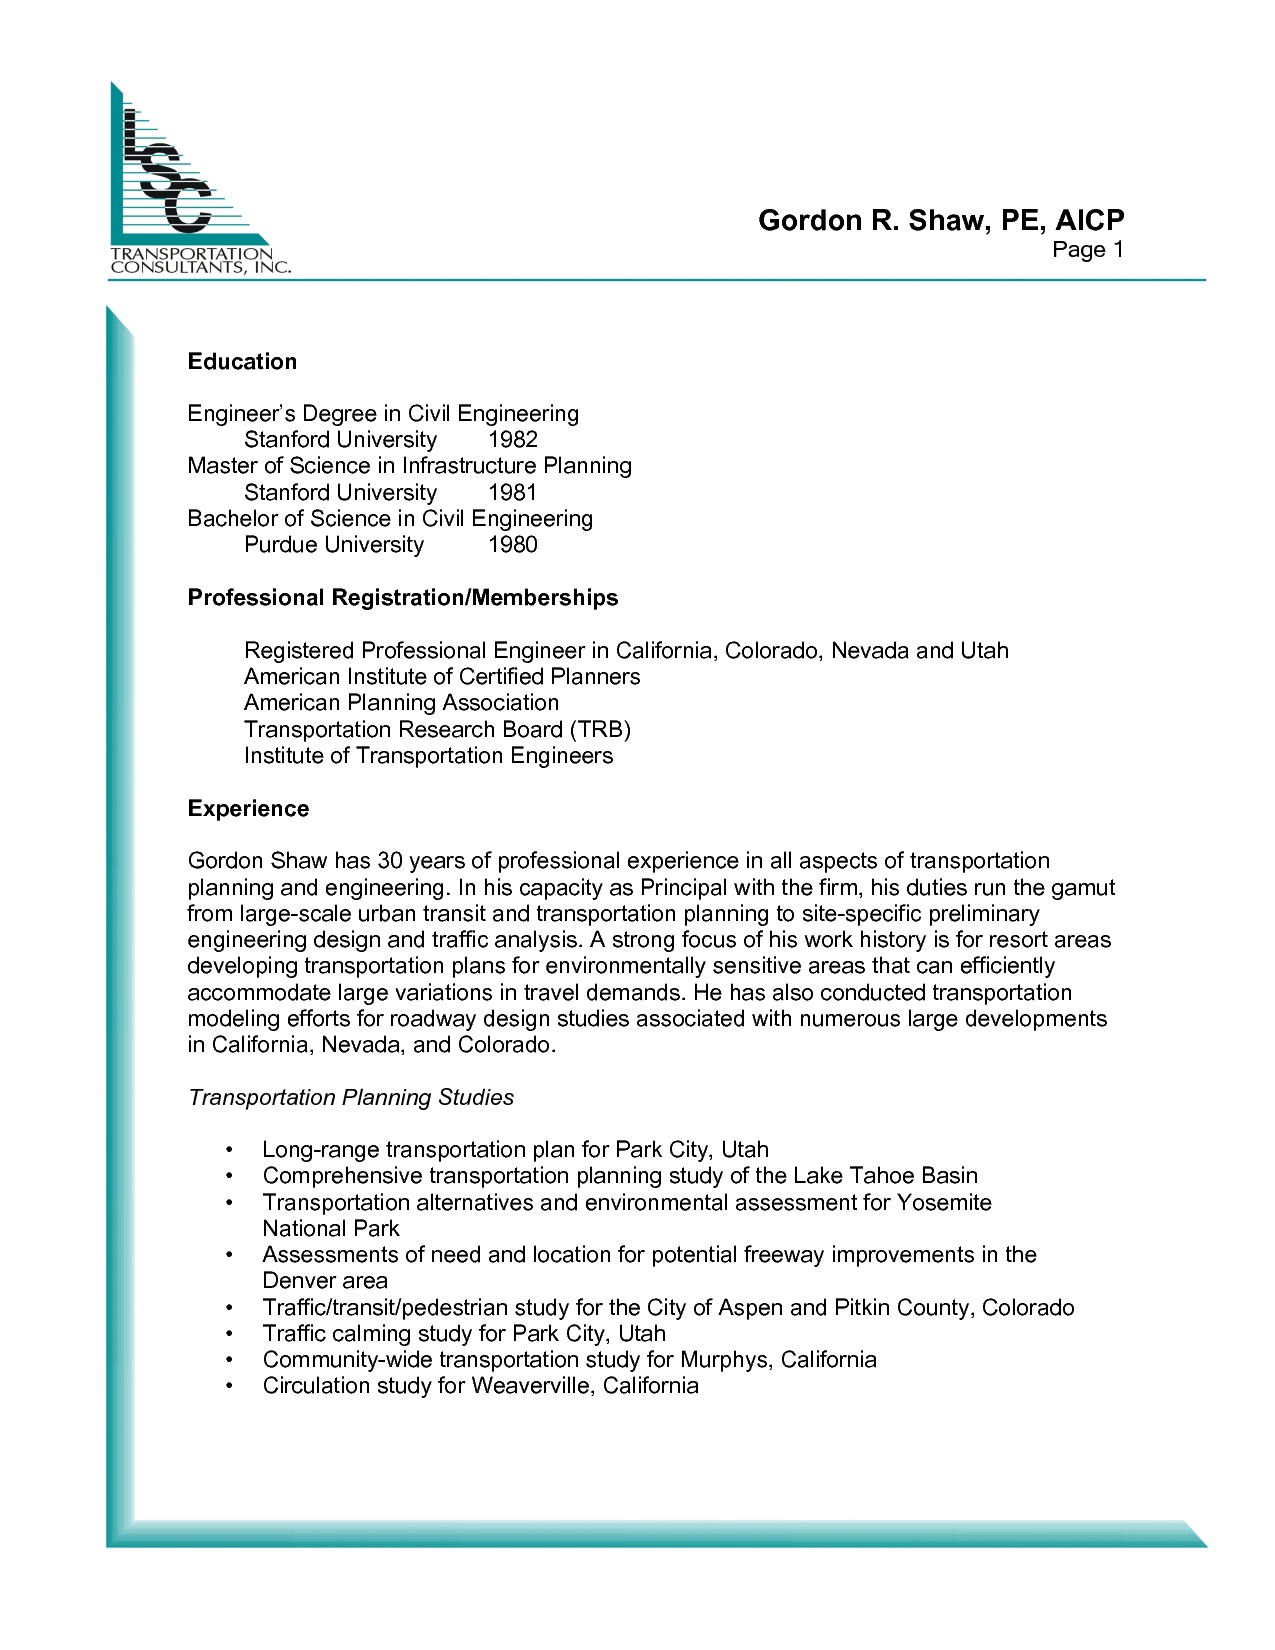 Resume Resume Format Civil Engineer army civil engineer sample resume printable rental receipts httpwwwresumecareerinfocivil fdd6251ae6fd30c4d300f94a2c2f6fa9 329466528968406827